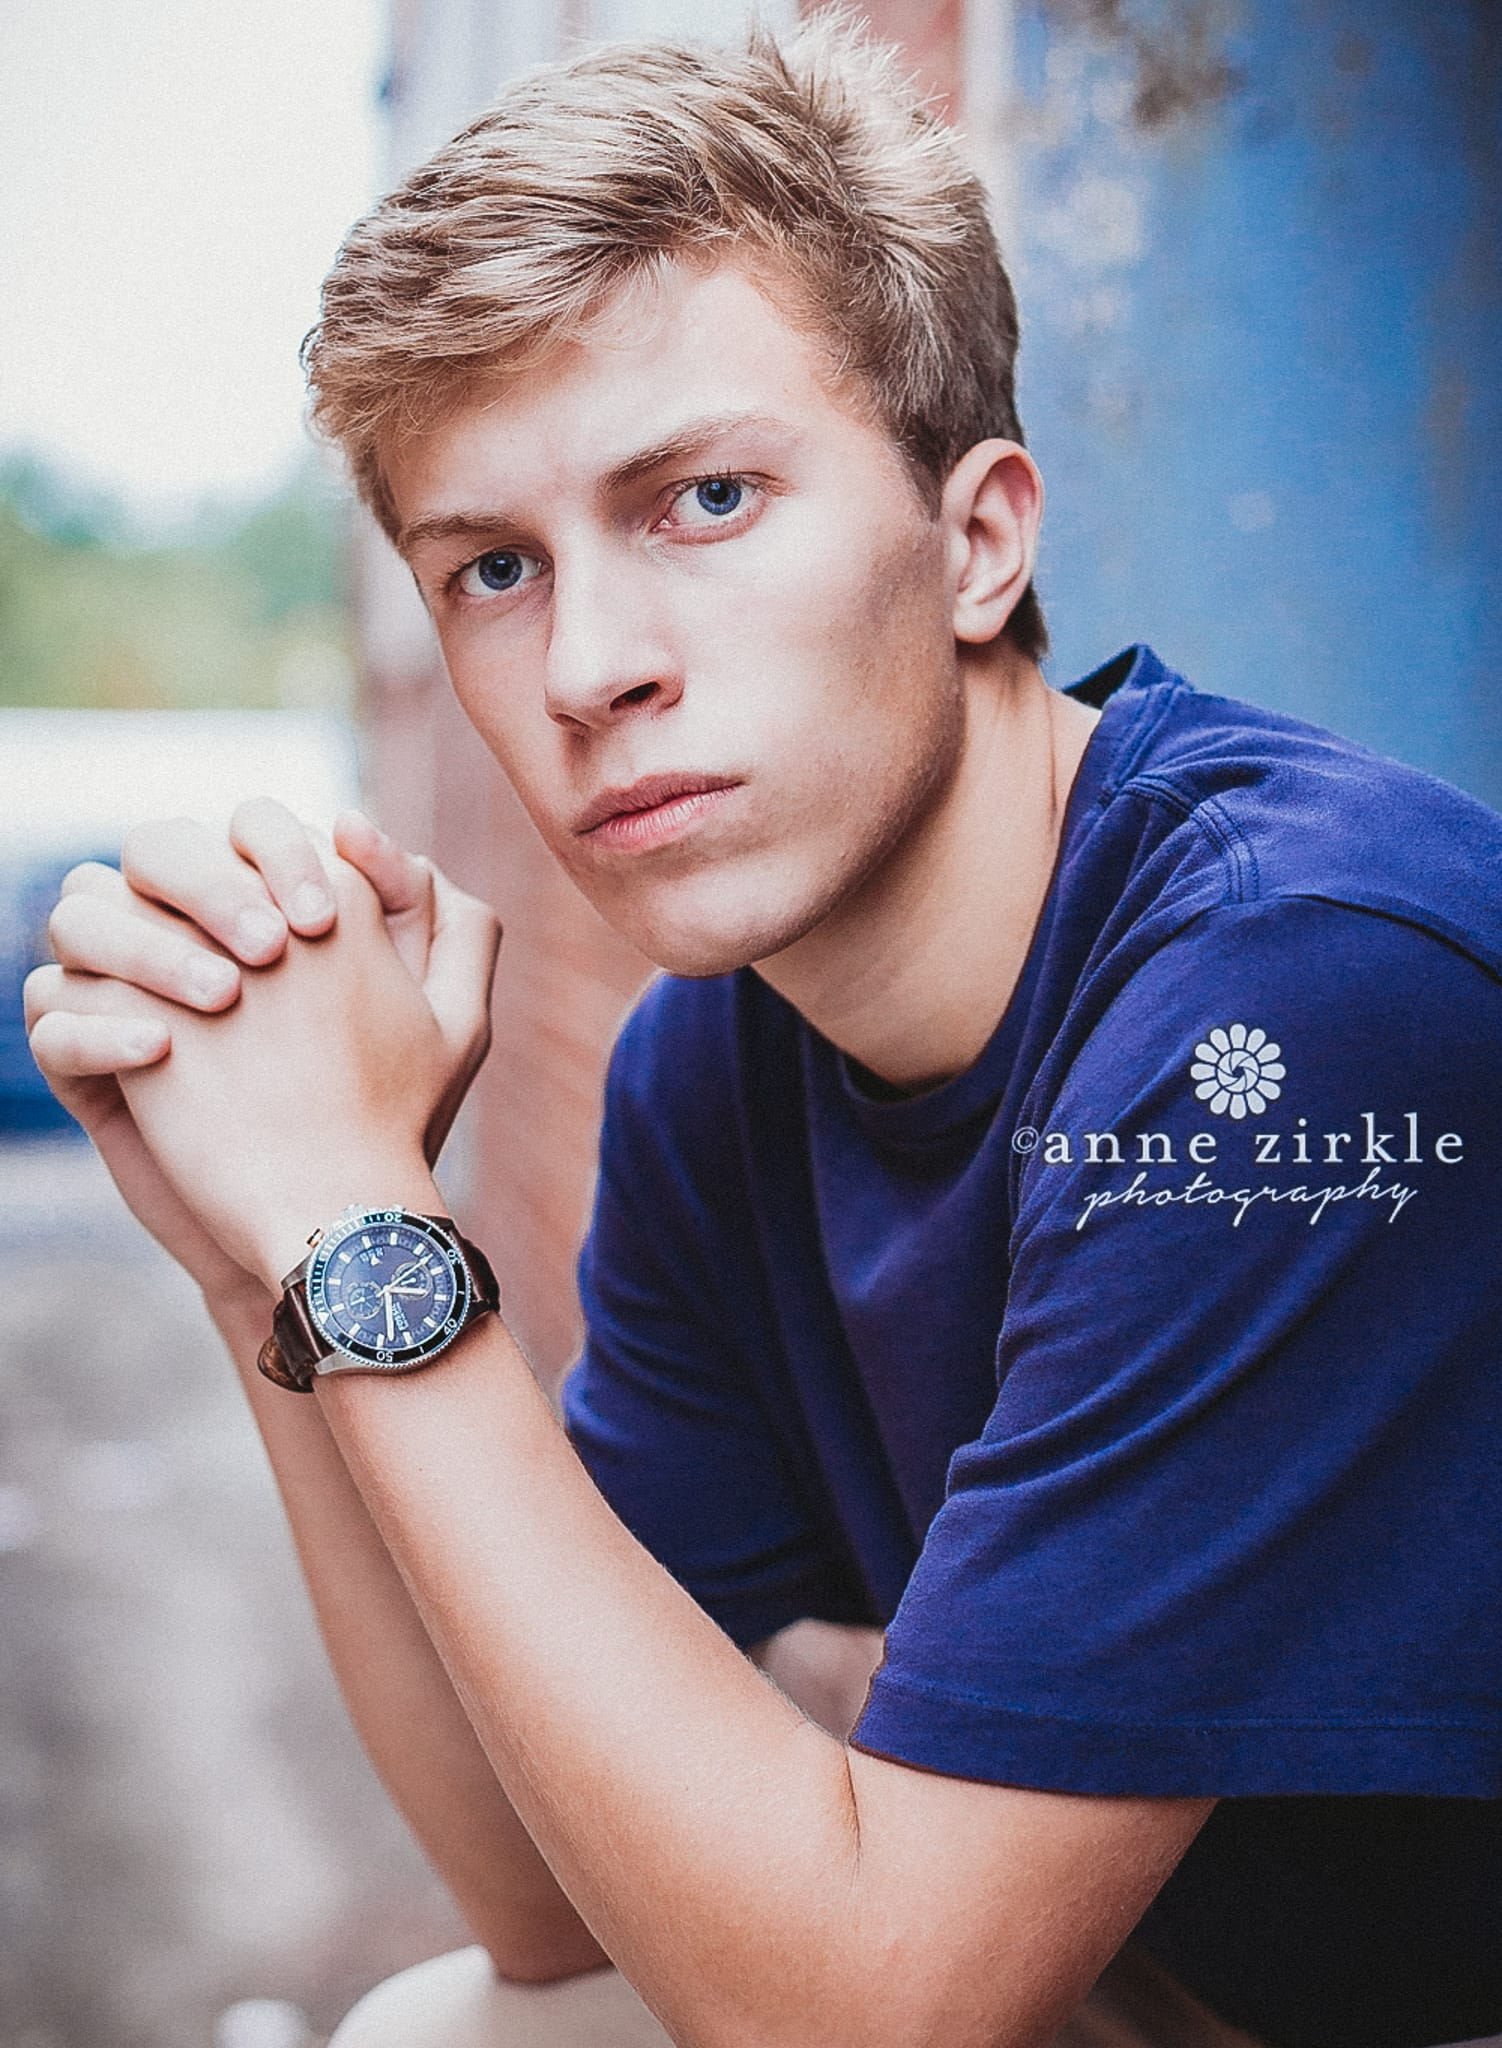 senior boy sitting by weathered door #mooresville #northcarolina #davidson #lakenorman #southiredell #pinelakeprep #highschool #highschoolsenior #highschoolseniors #seniors